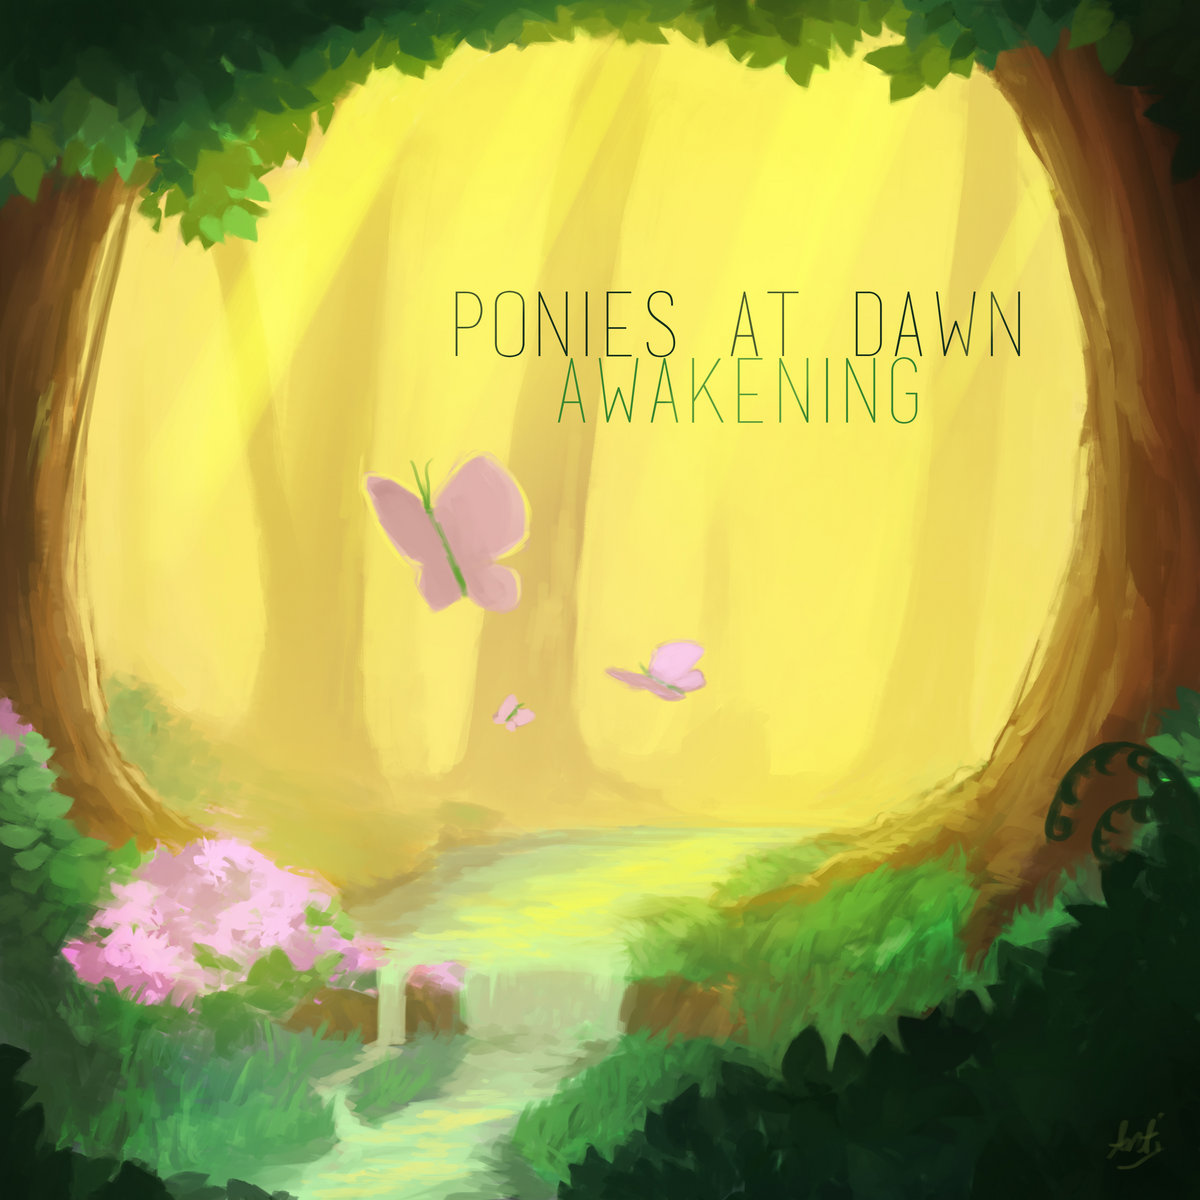 awakening ponies at dawn